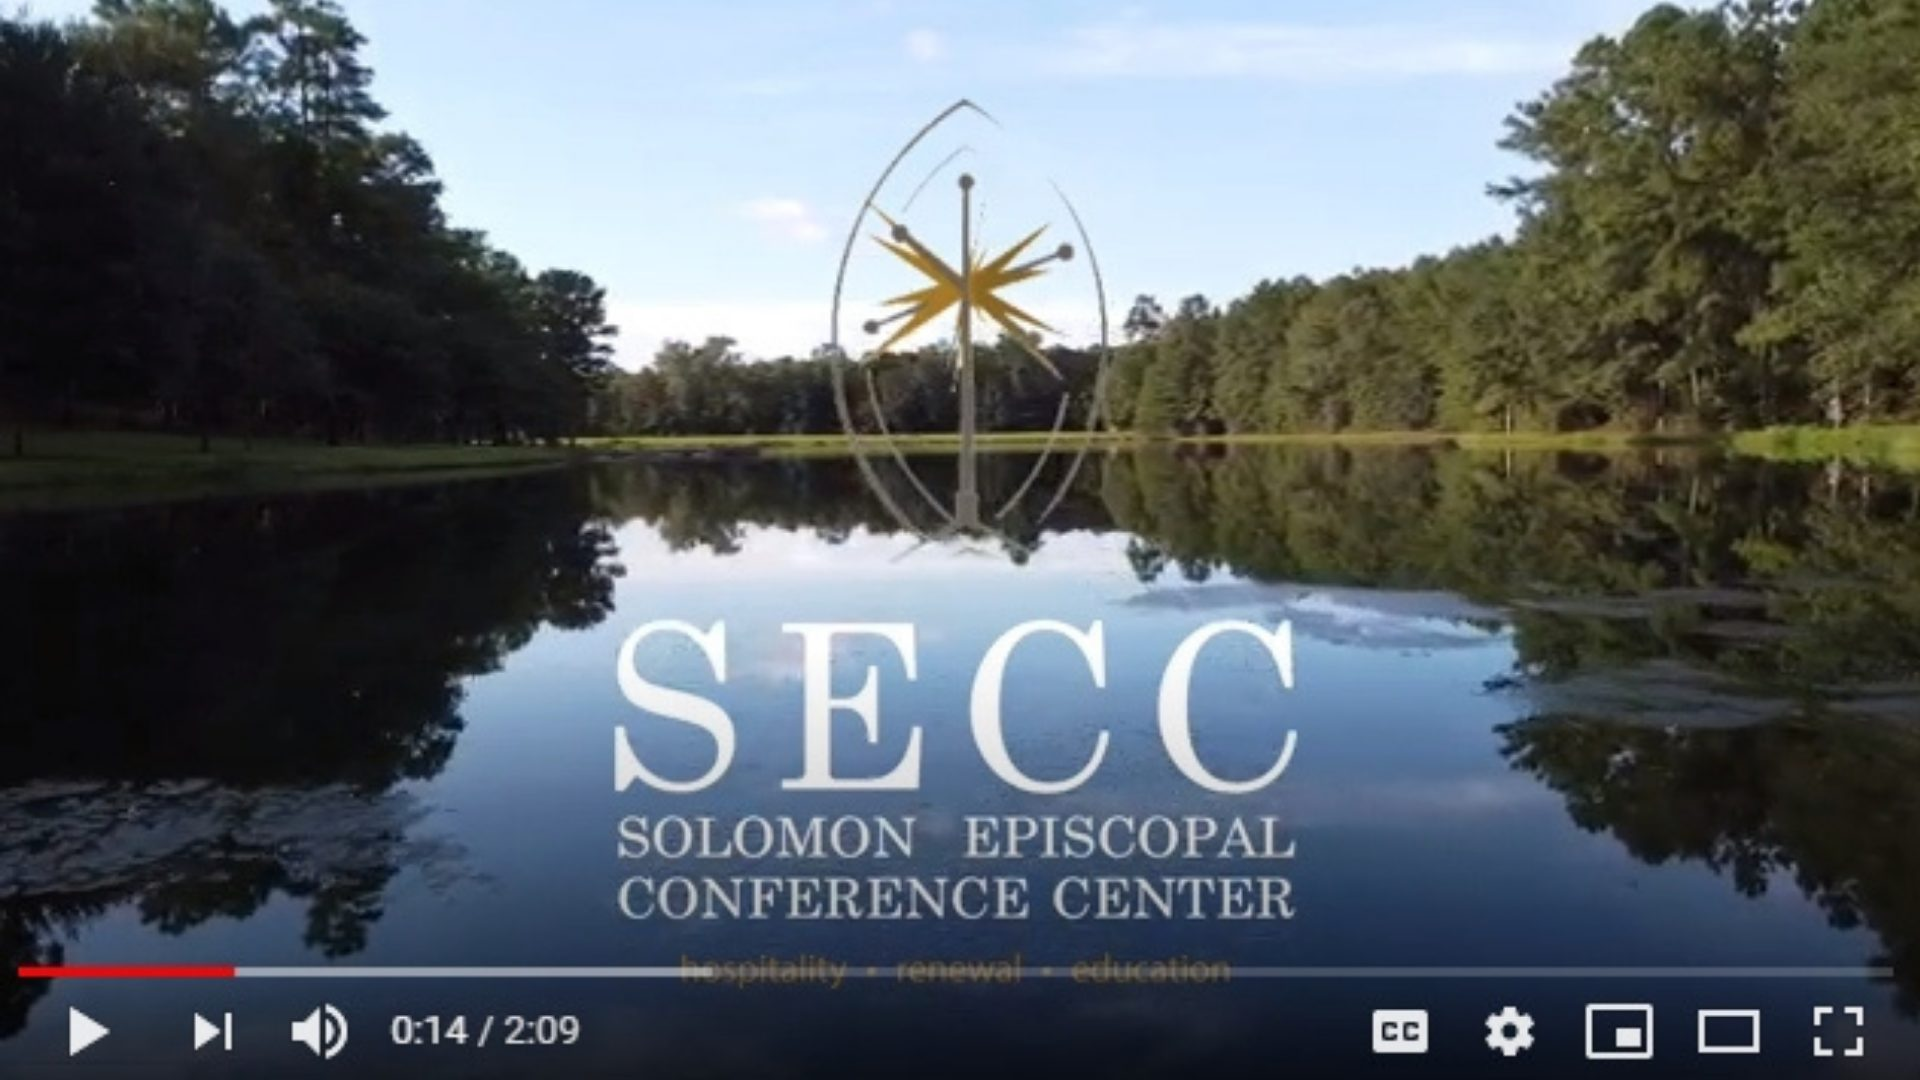 Support for the Solomon Center